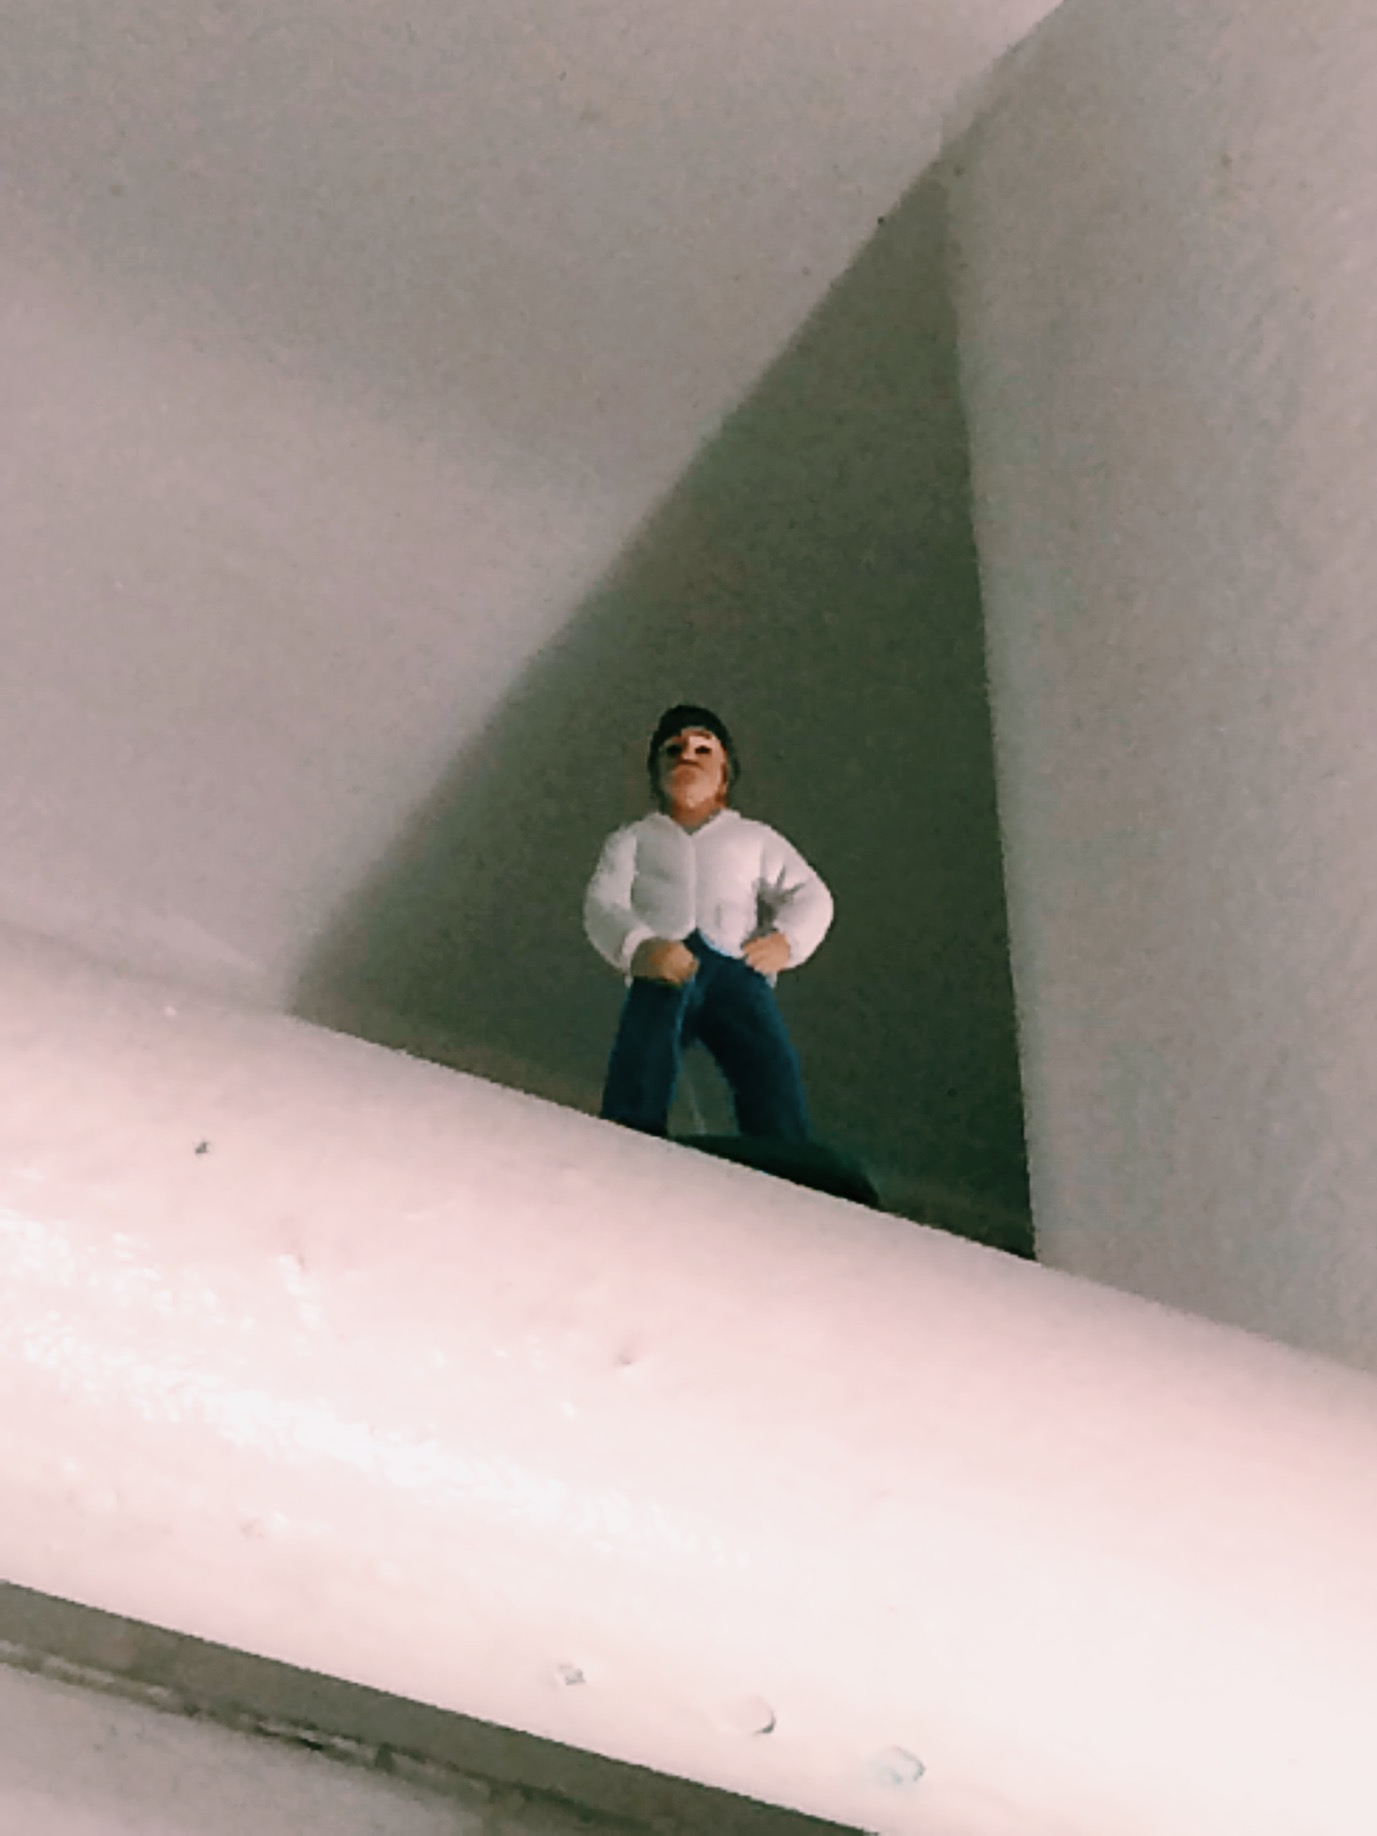 A man peeing on your while you wash your hands in the bathroom. You can find toys all around on the house on these ceiling pipes.